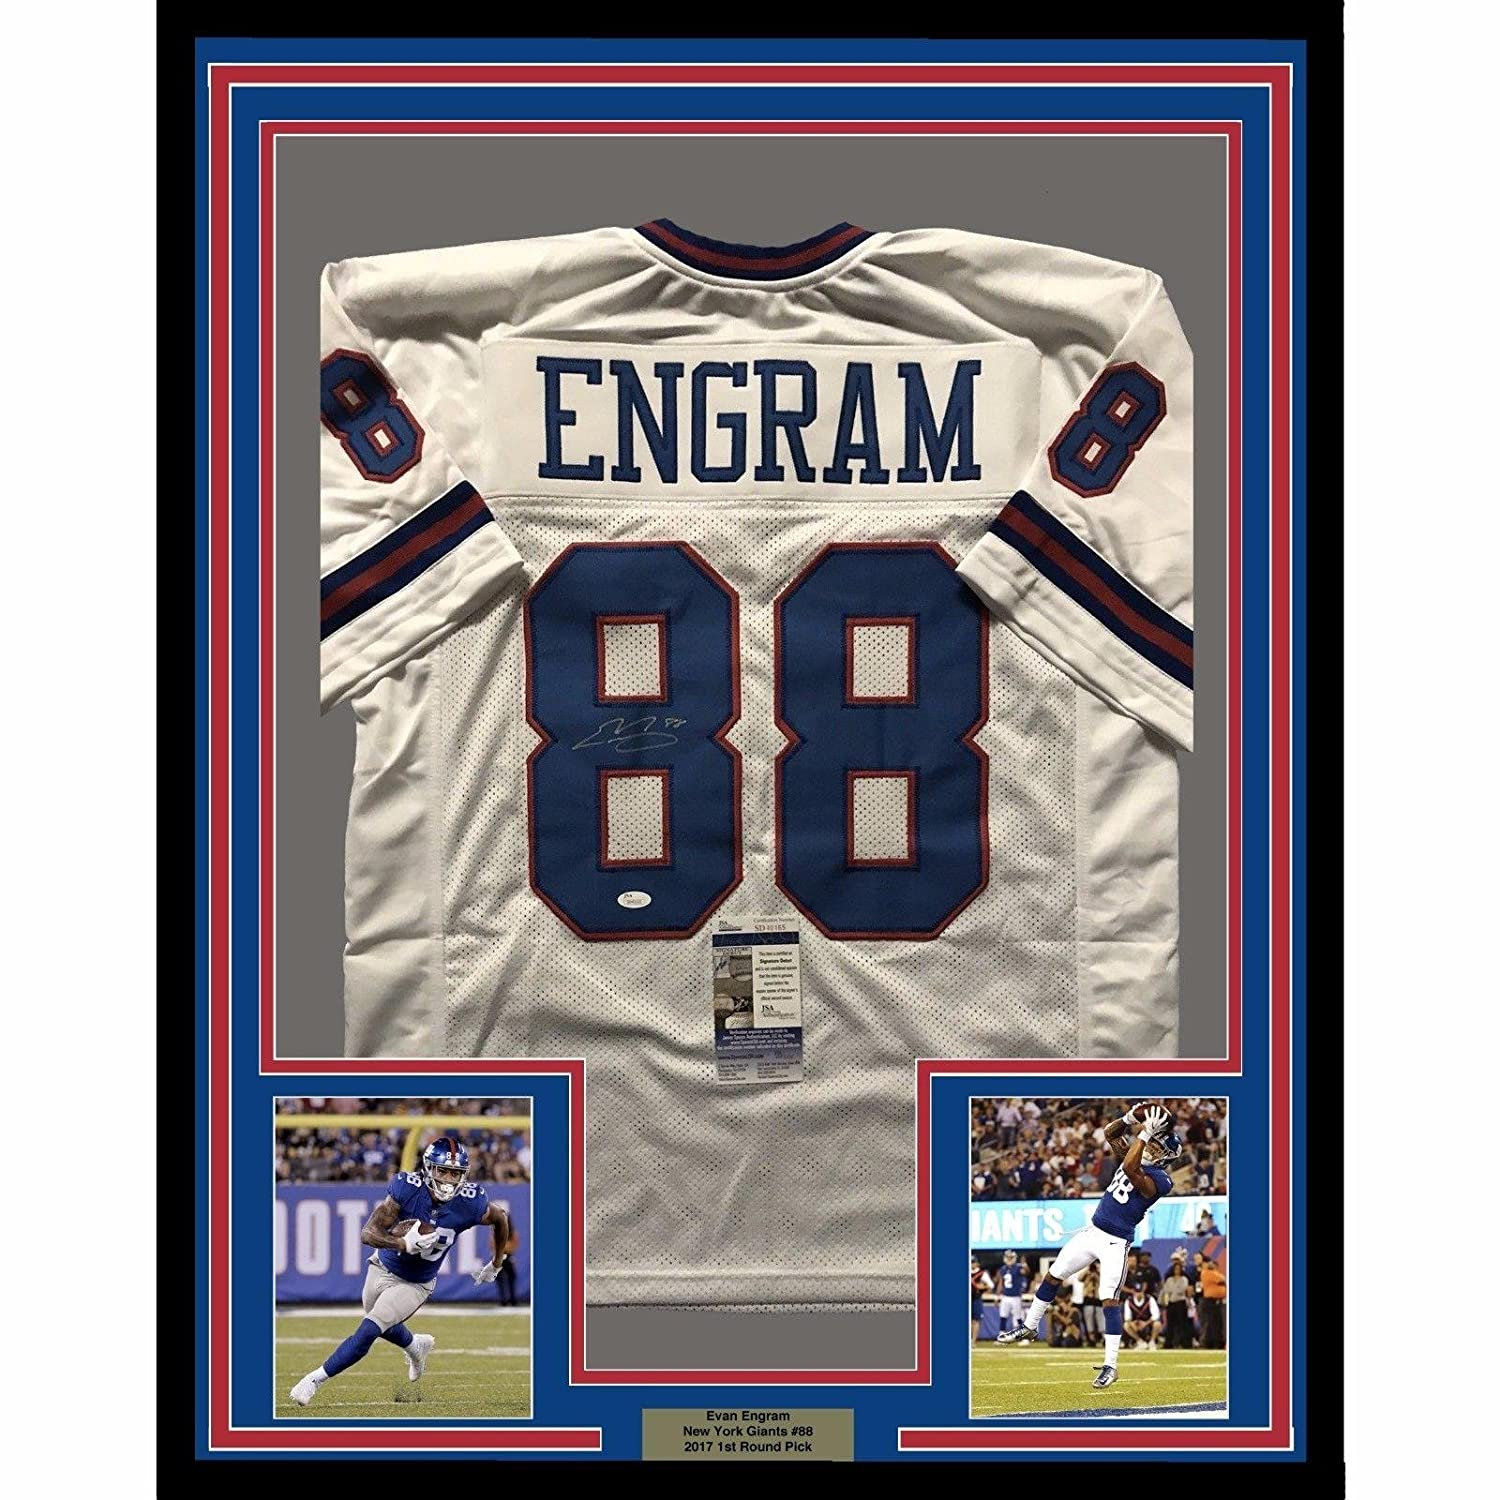 dcfdbf84a Amazon.com  Evan Engram Autographed Jersey - FRAMED 33x42 Color Rush COA -  JSA Certified - Autographed NFL Jerseys  Sports Collectibles